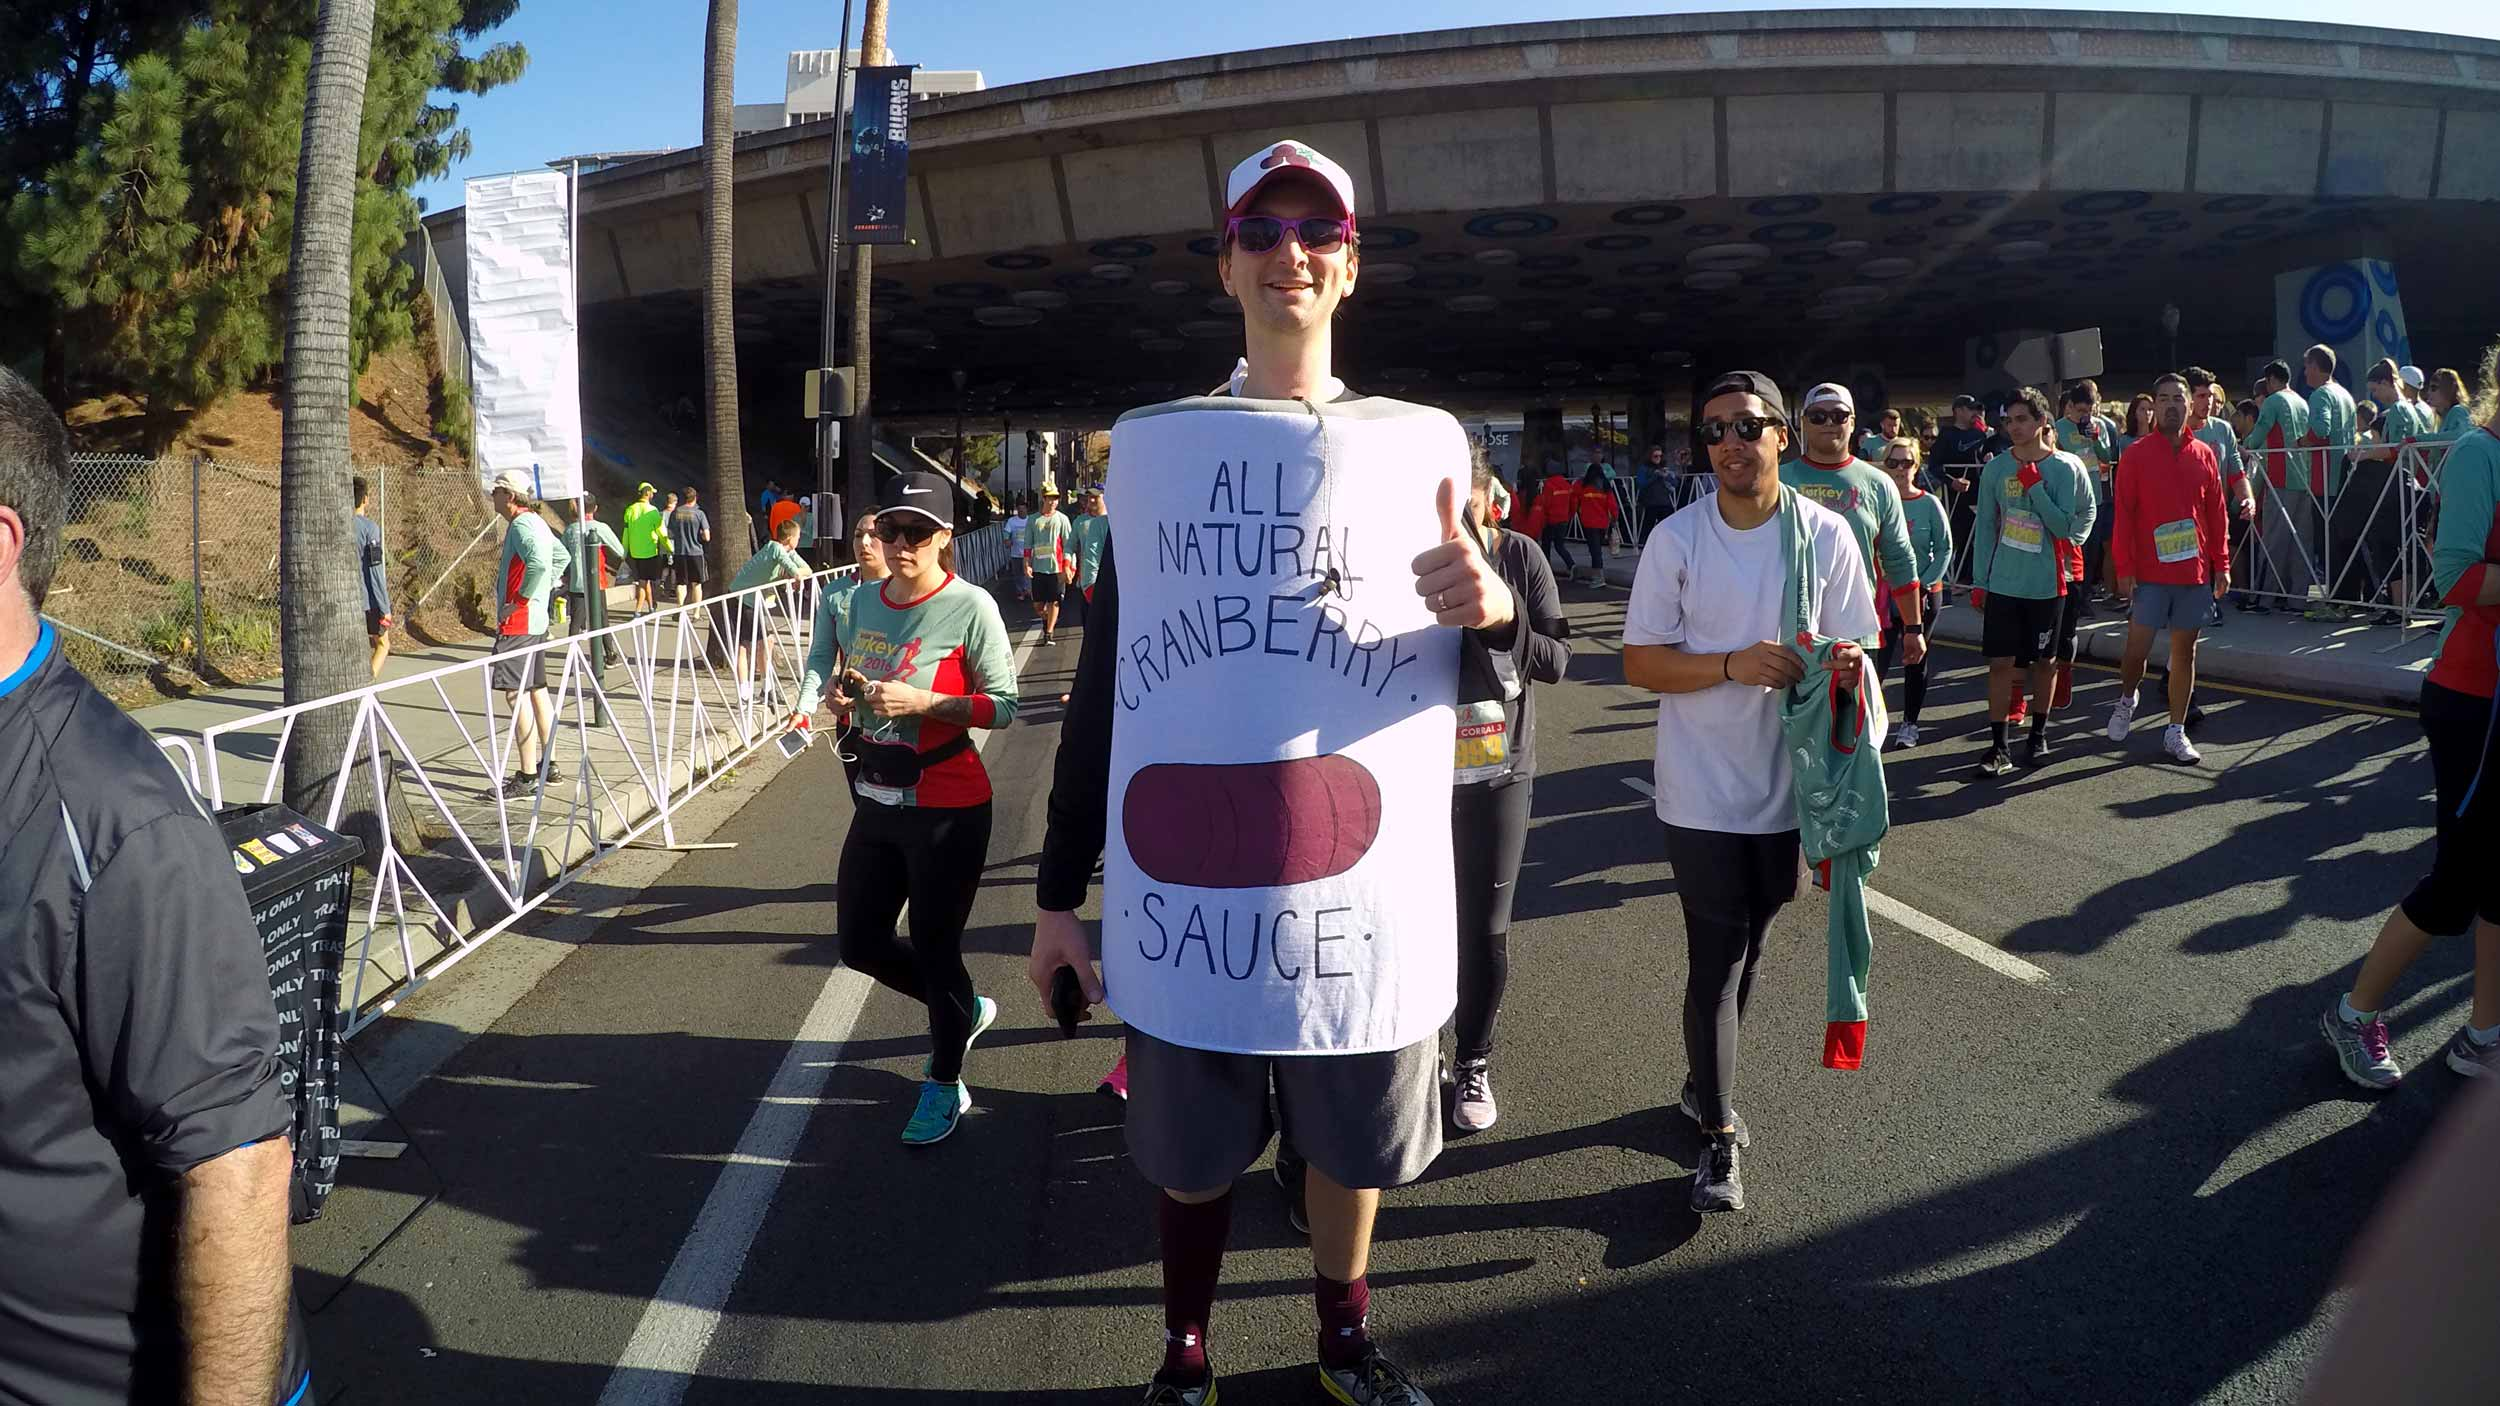 cranberry sauce costume at the Silicon Valley Turkey Trot